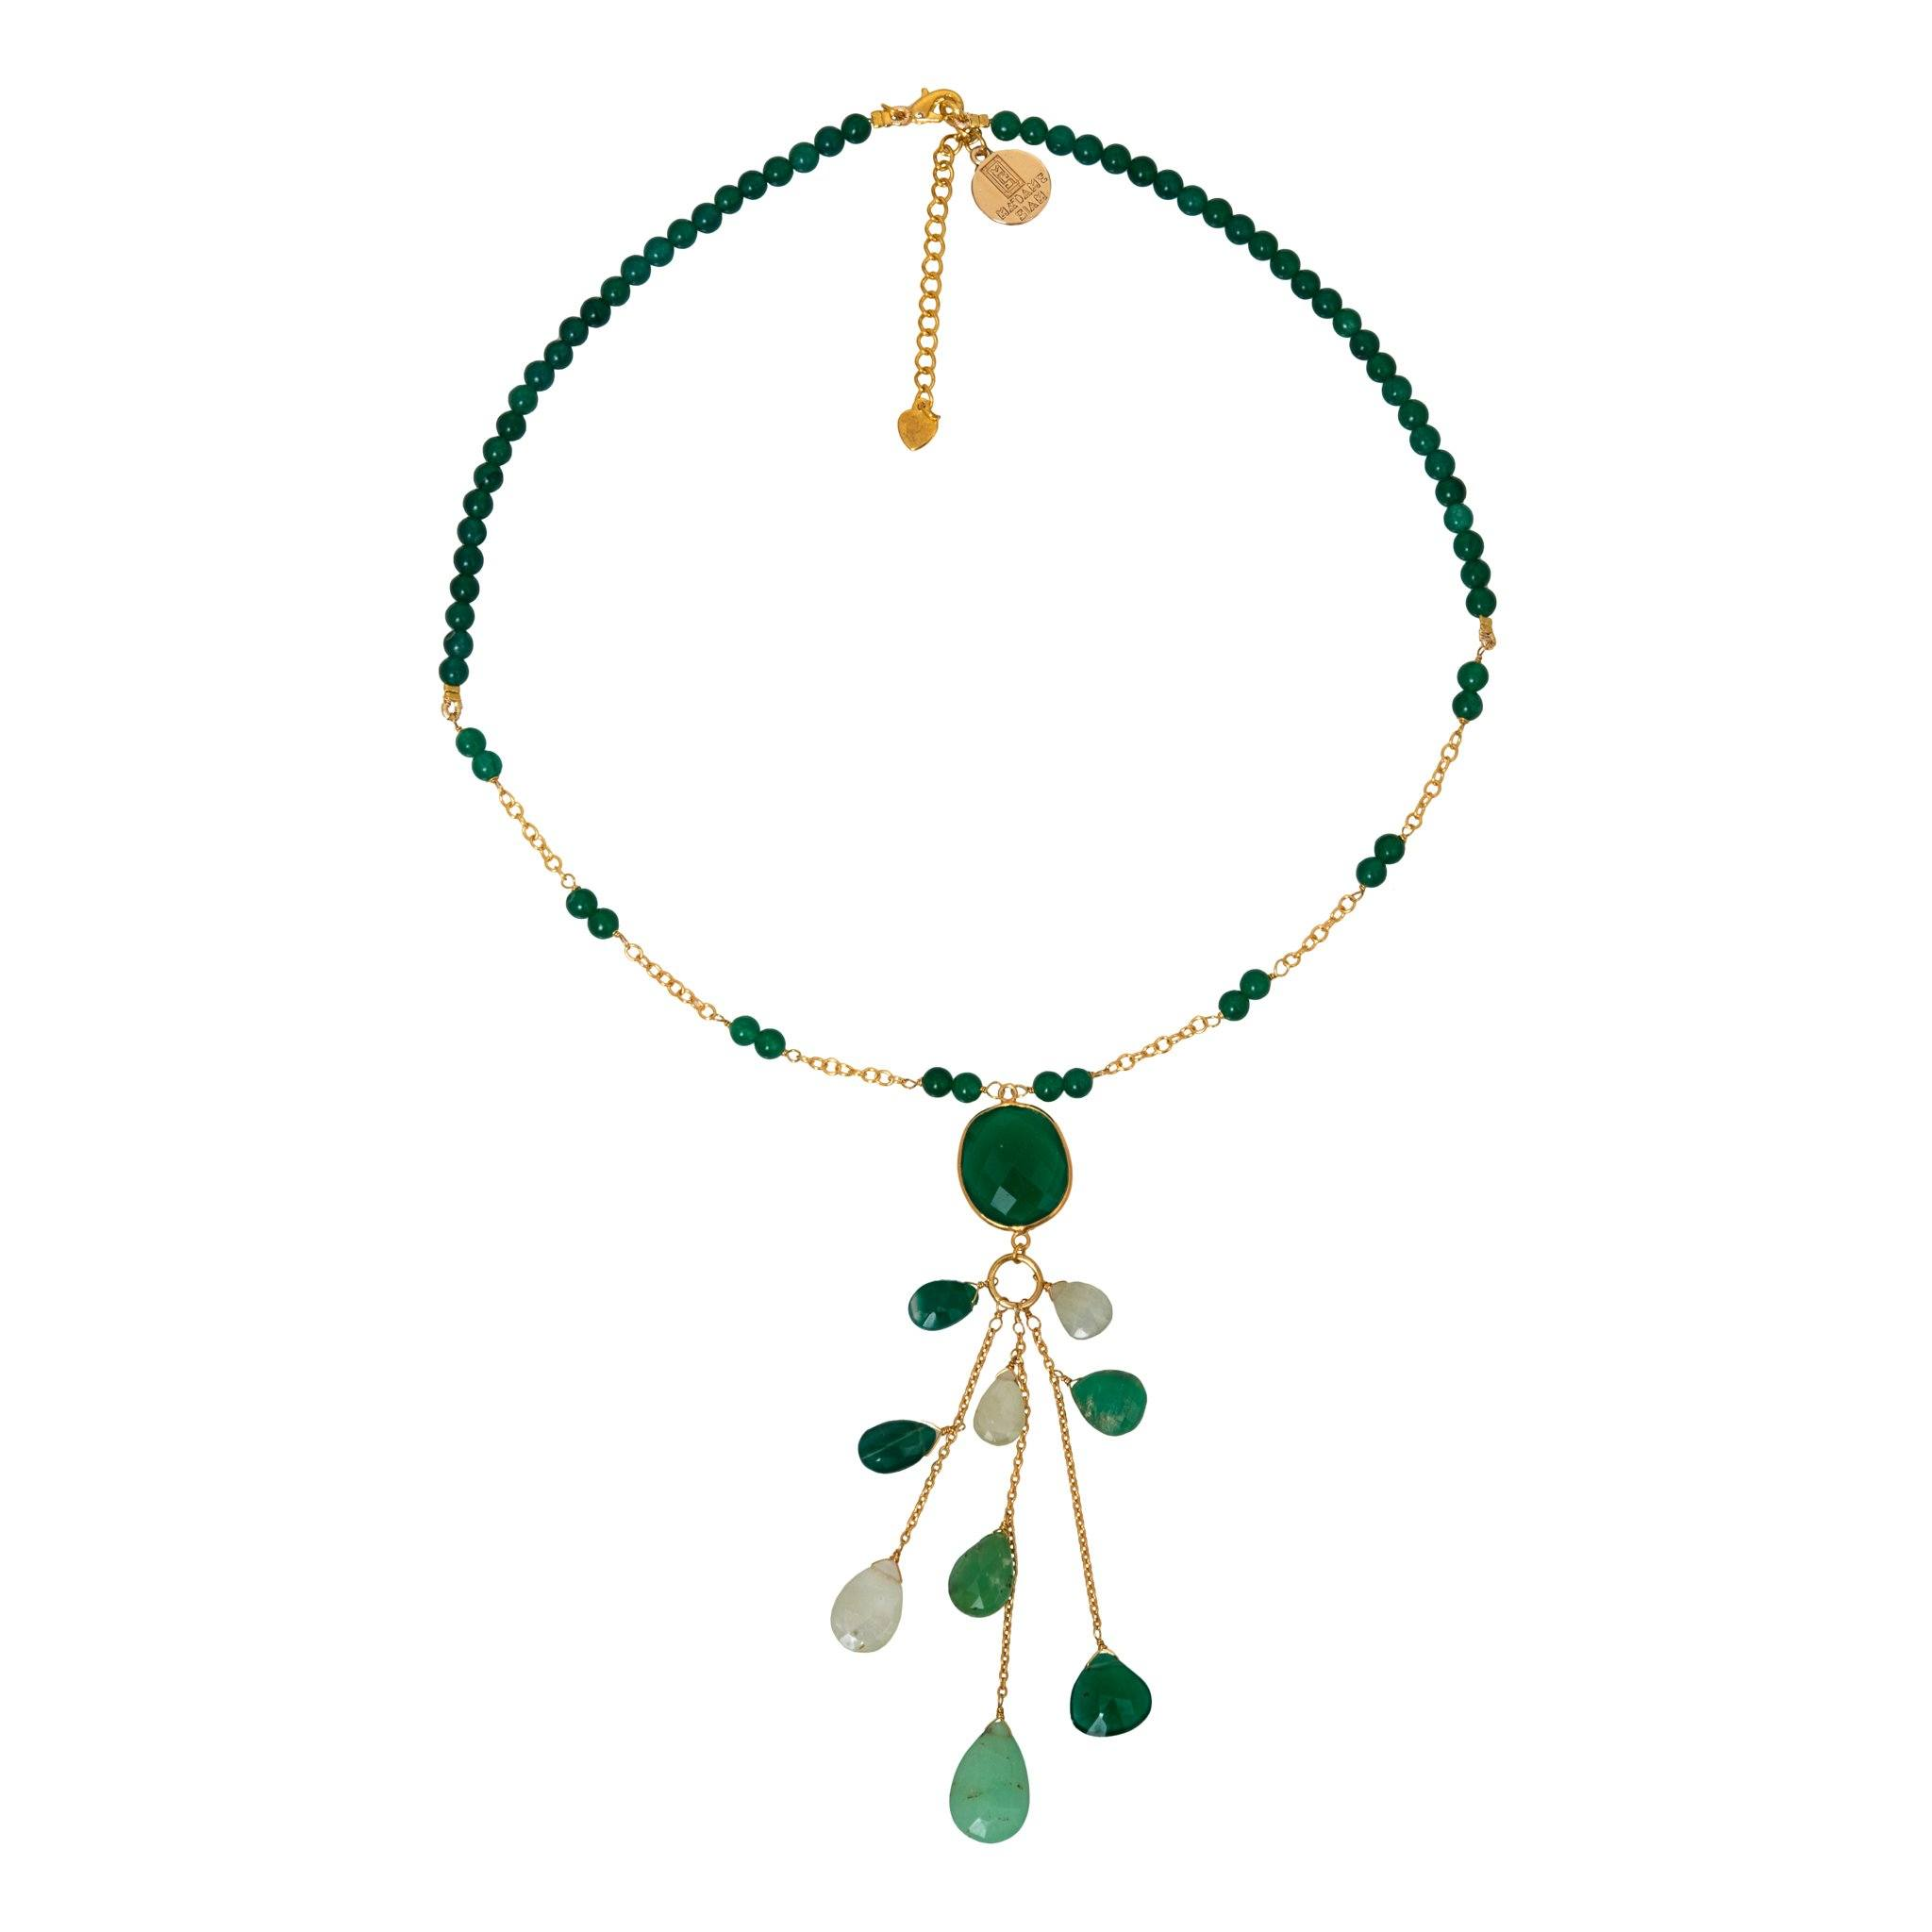 LUZ green onyx chocker with drops - MadamSiam